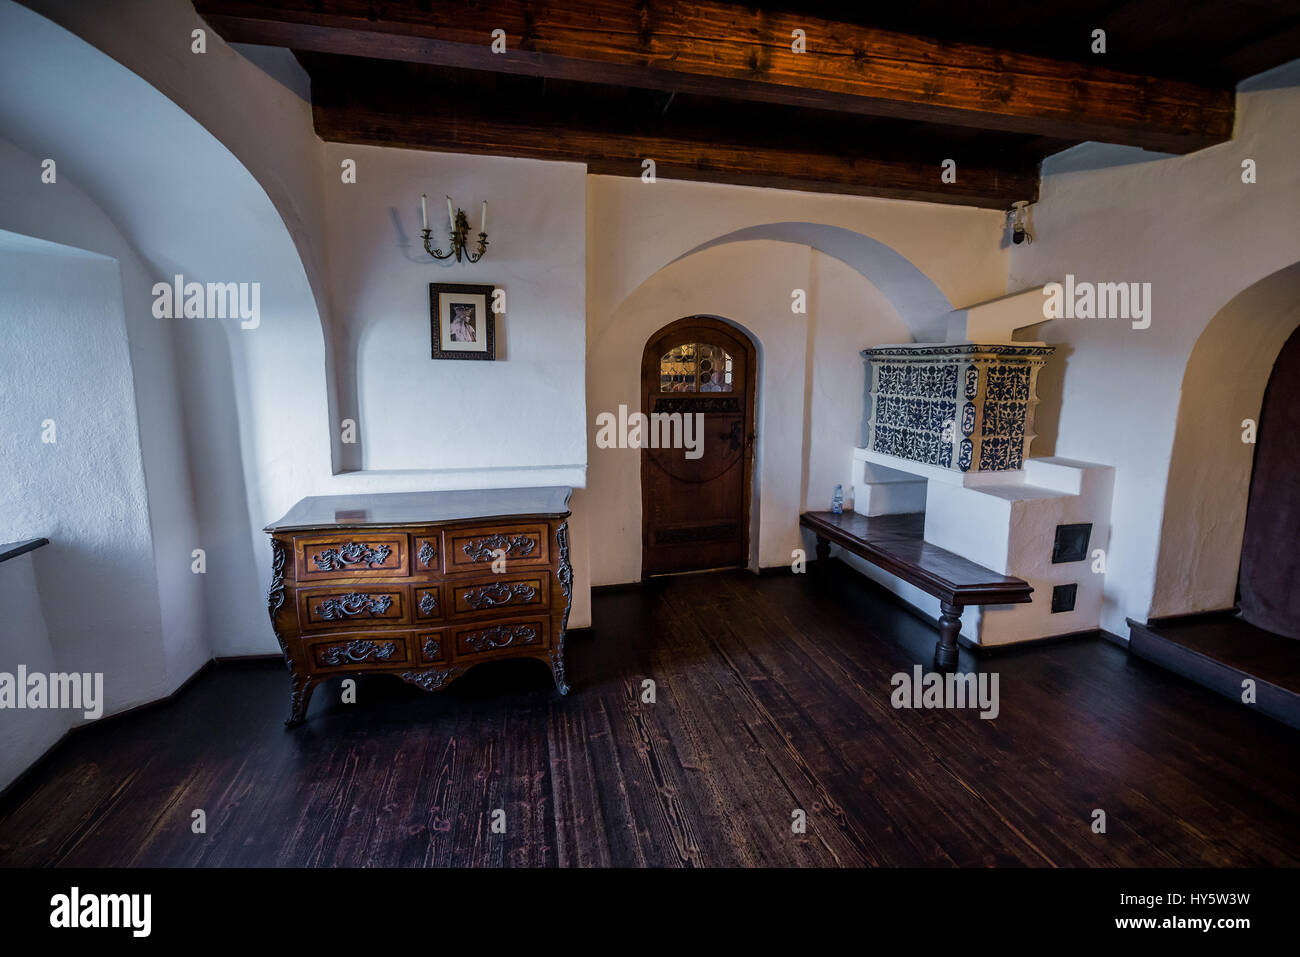 Ceramic Tiled Stove Stock Photos & Ceramic Tiled Stove Stock ...